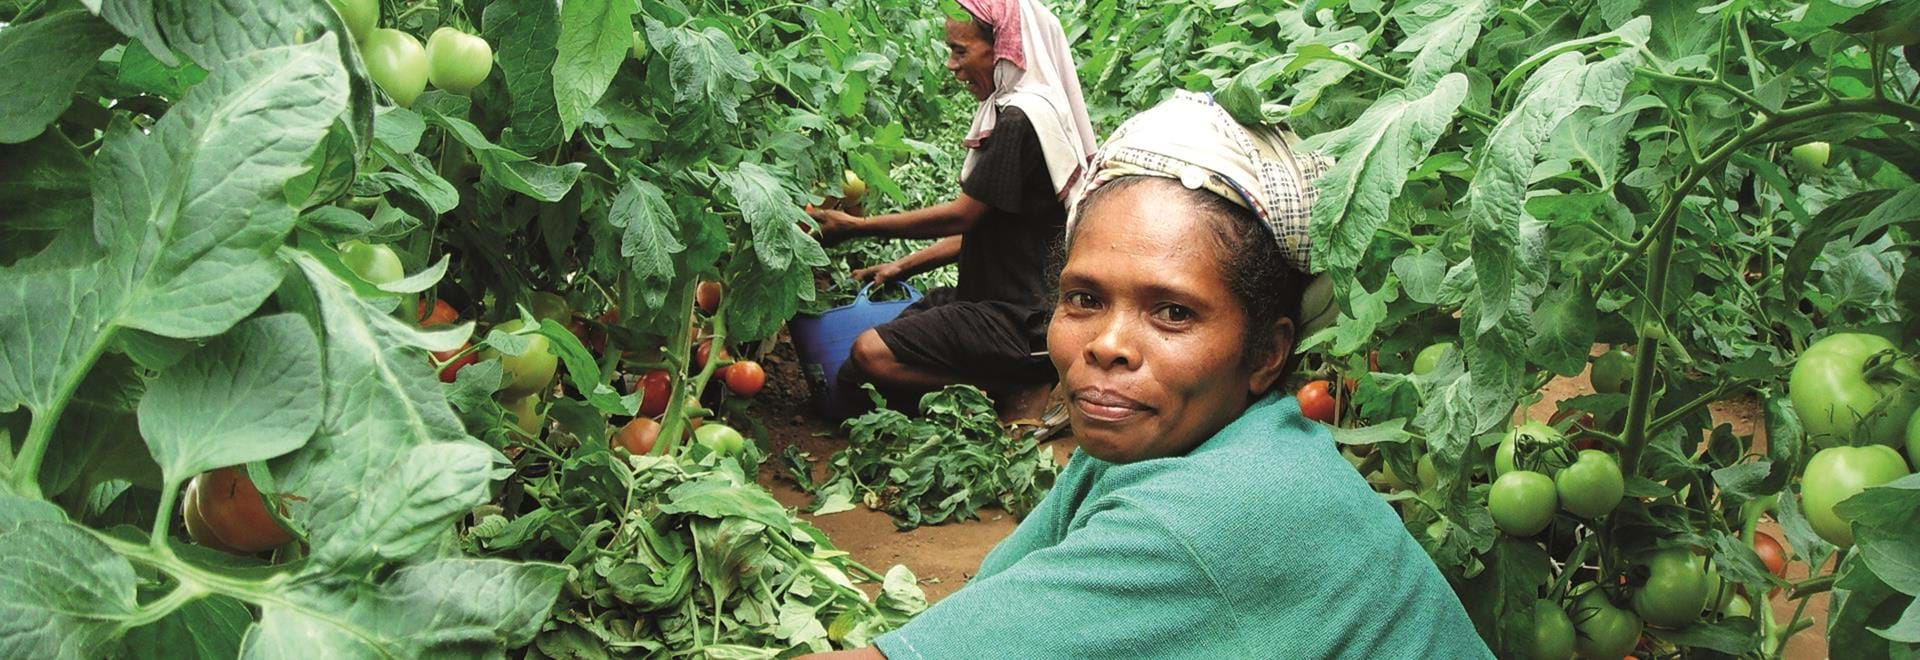 Indonesian ladies picking tomatoes